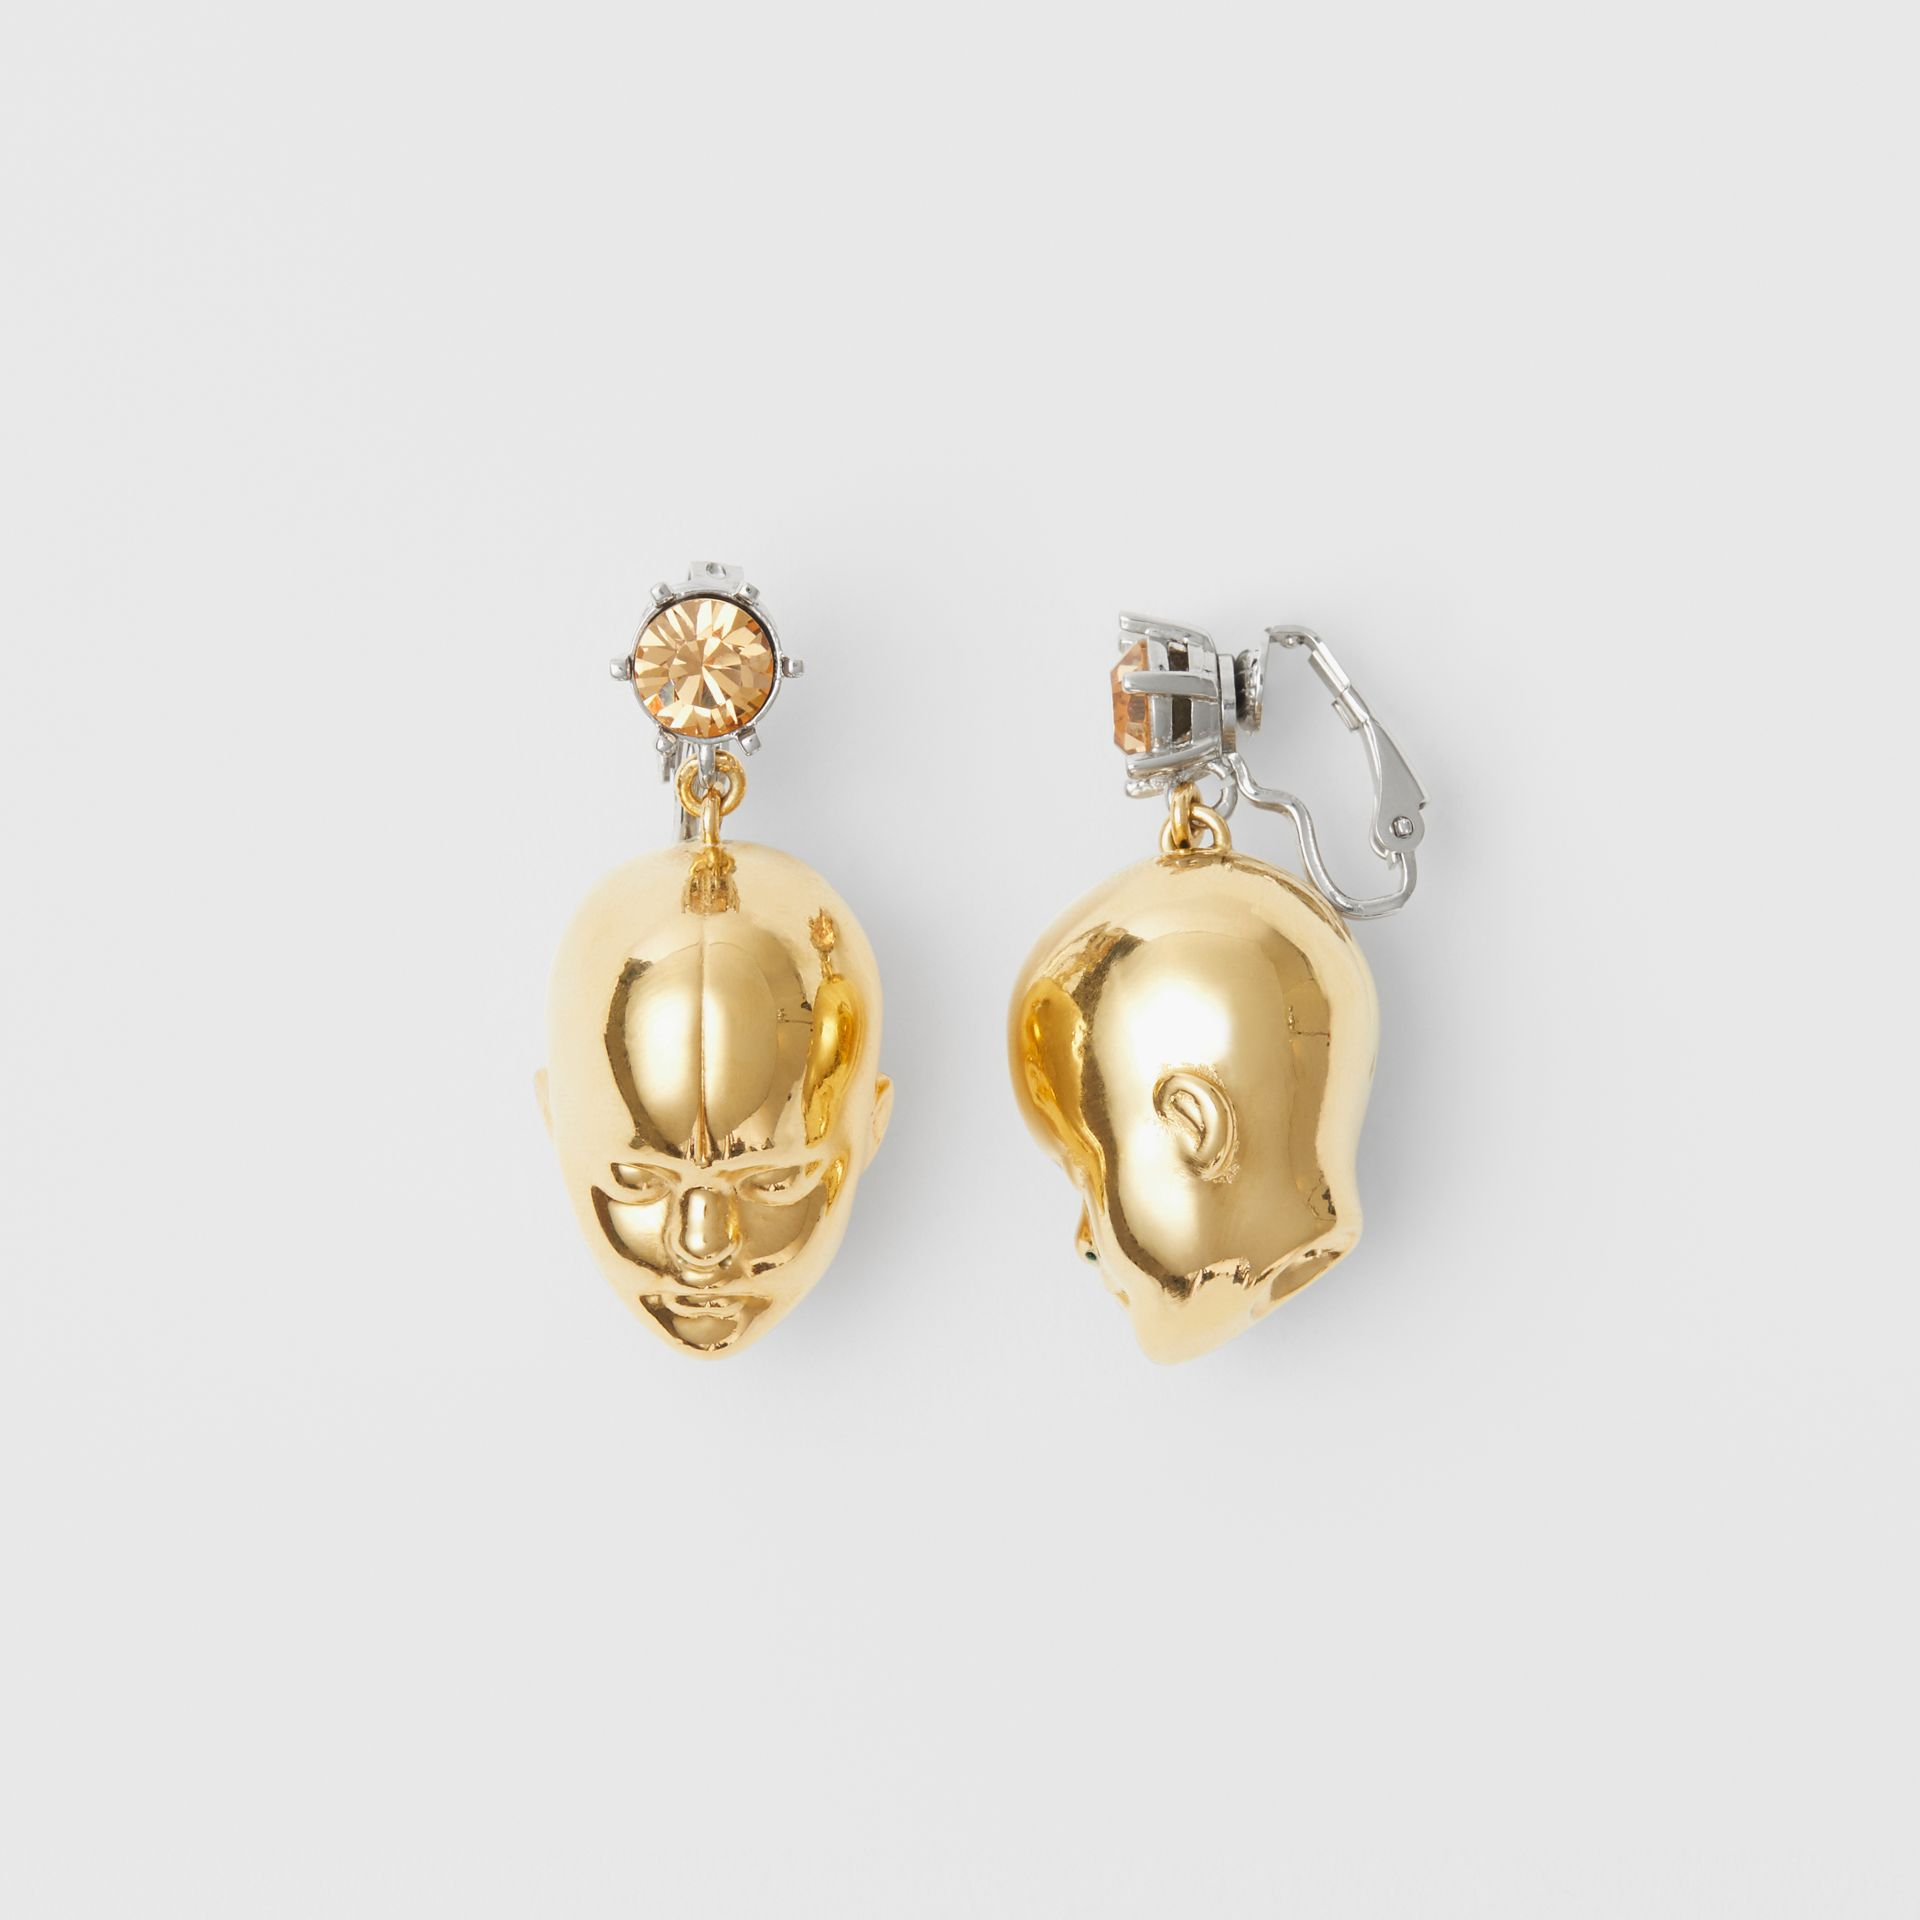 Crystal and Doll's Head Gold-plated Drop Earrings in Light Colorado/light - Women | Burberry Singapore - gallery image 2